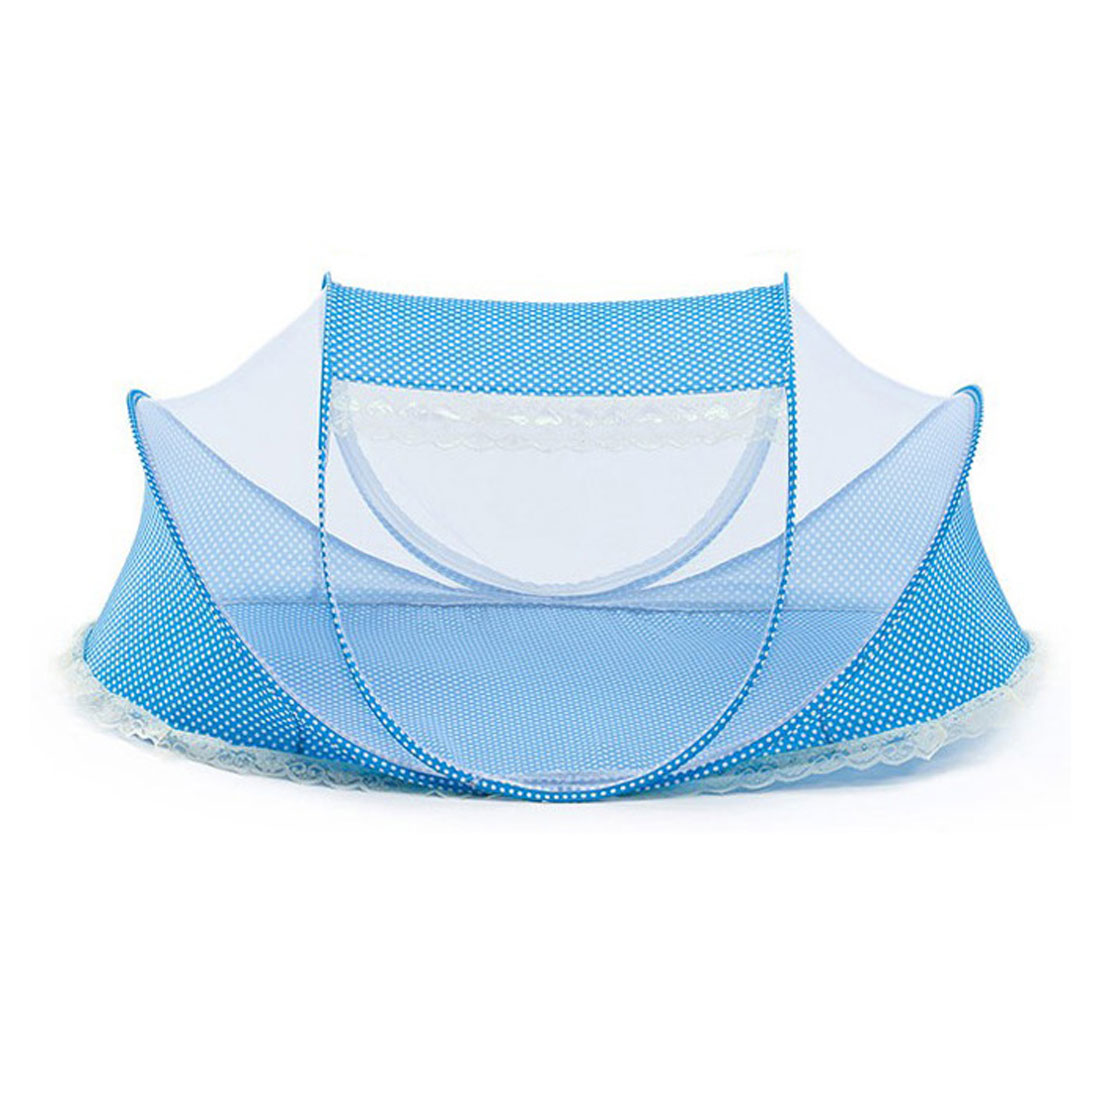 Crib Mosquito Net Promotion Shop For Promotional Crib